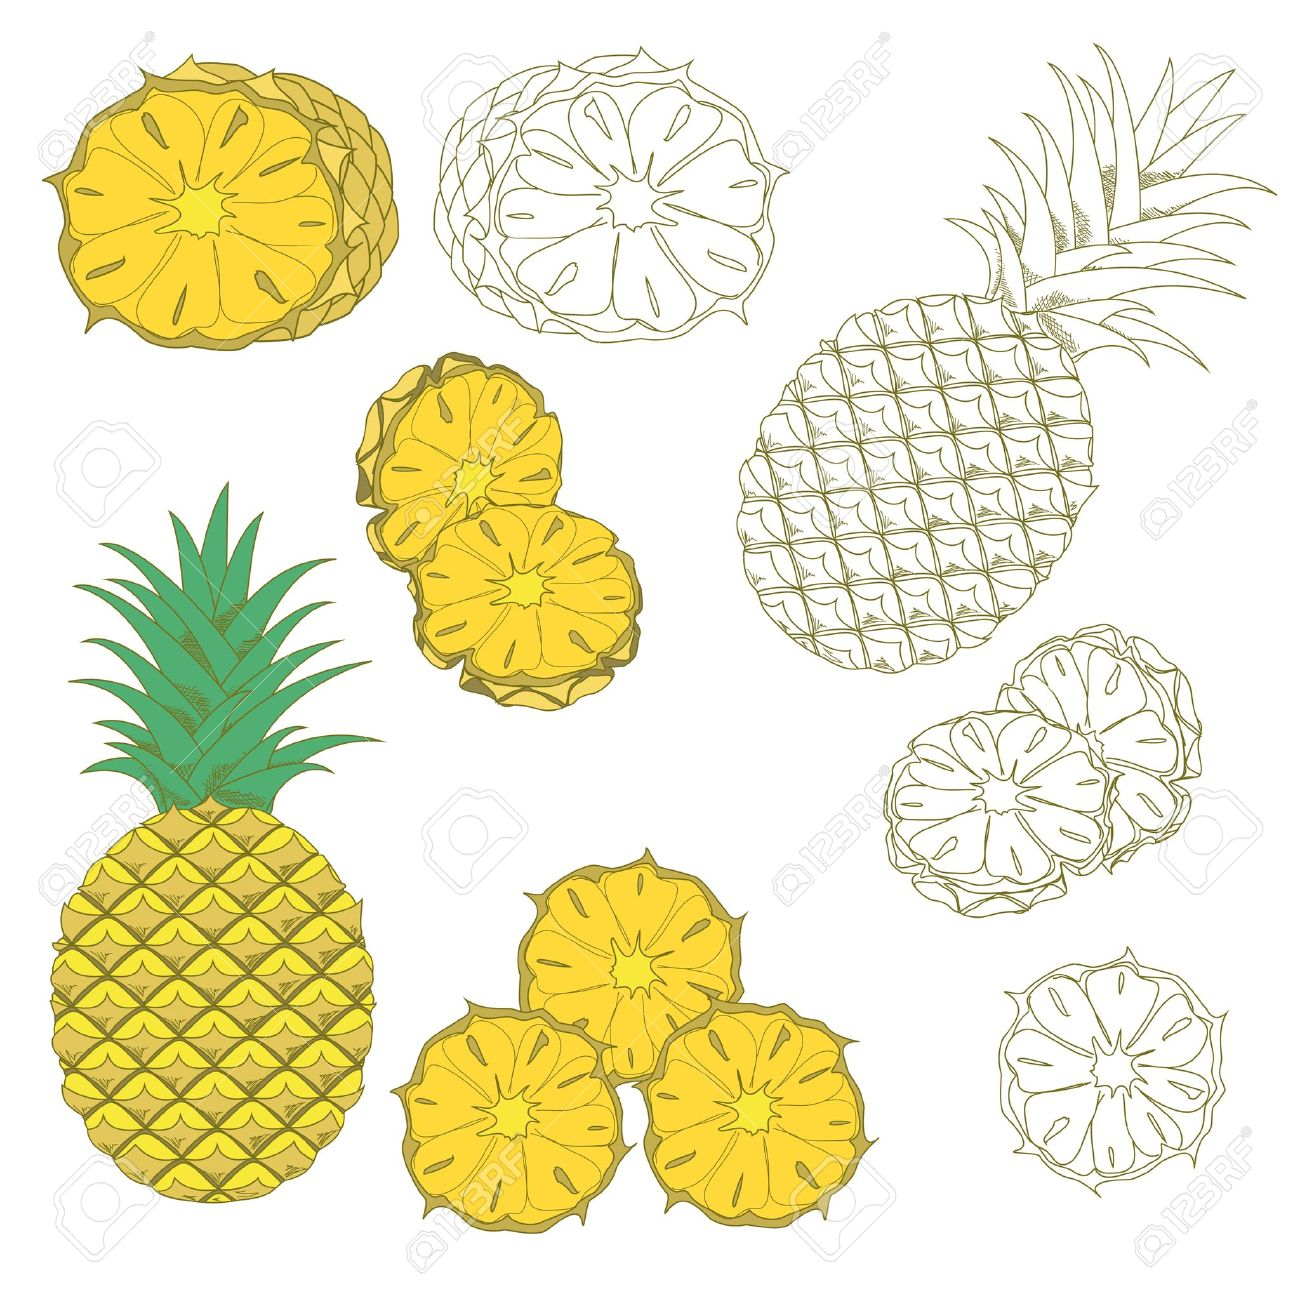 pineapple slice clipart. set of colored and hand drawn pineapples on the white background. isolated icon. stock pineapple slice clipart